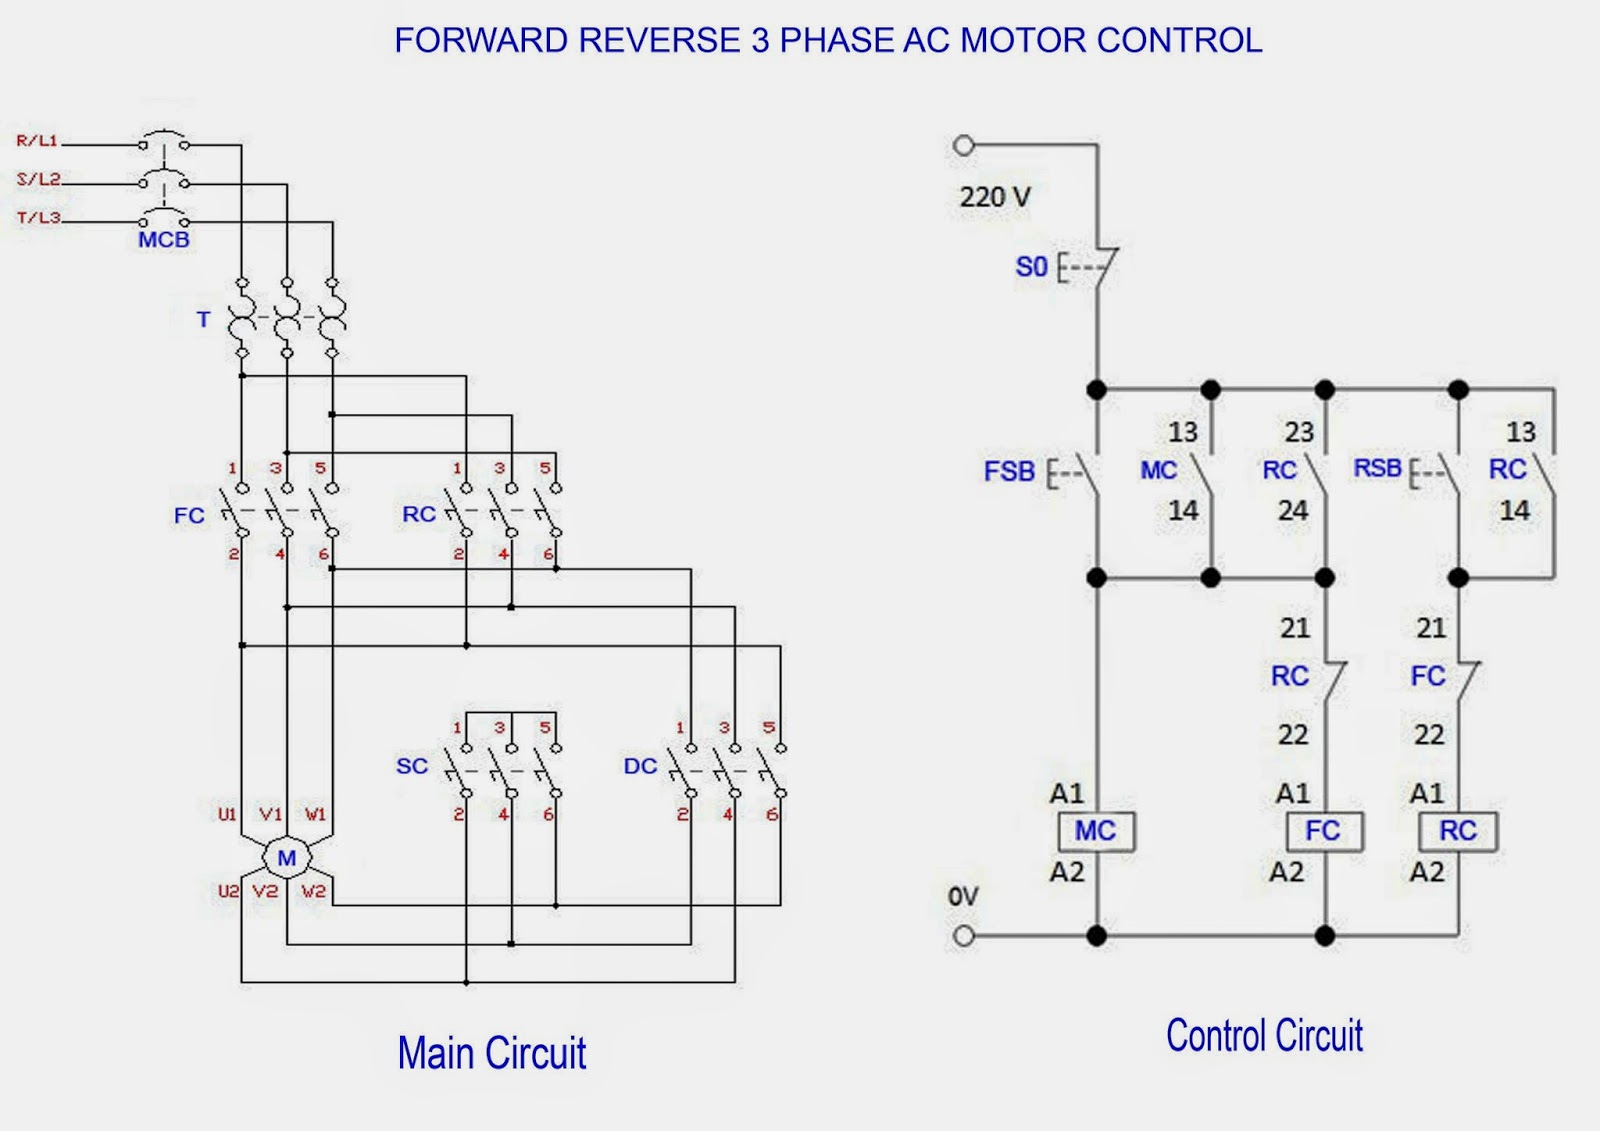 forward reverse 3 phase ac motor control wiring diagram electrical rh windingdiagrams blogspot com 3 Phase Heater Wiring Diagram 3 phase star delta motor wiring diagram